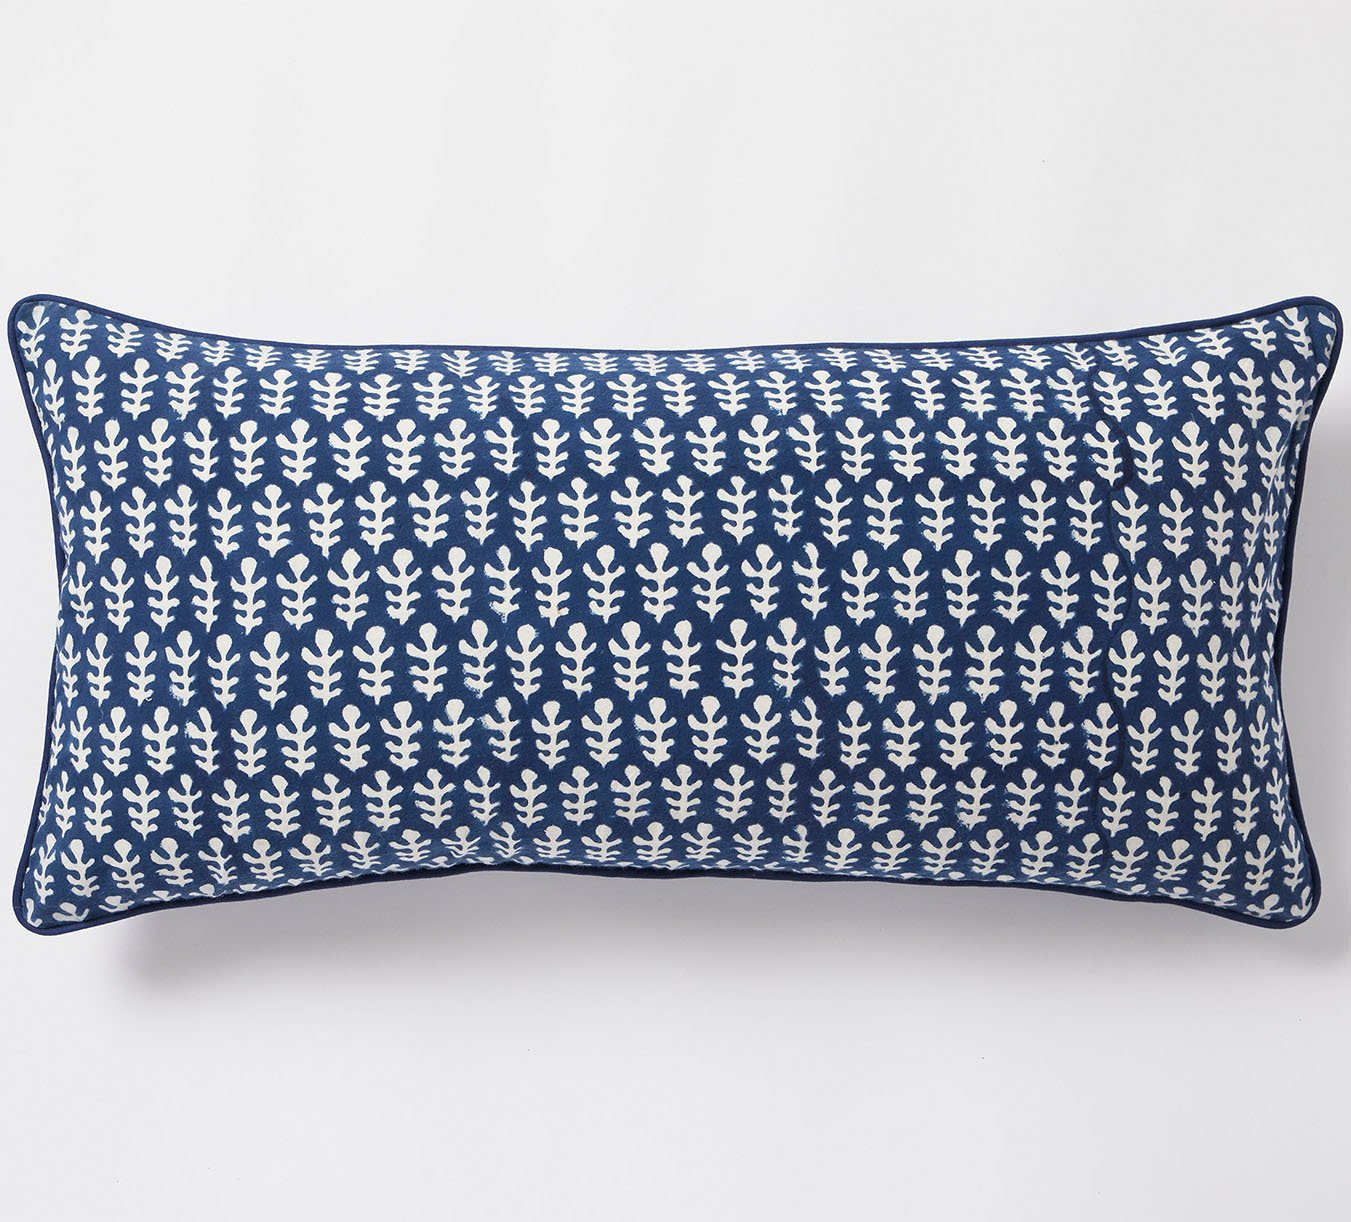 Cushion - Bagru - Piped - Dark Blue - Noodle